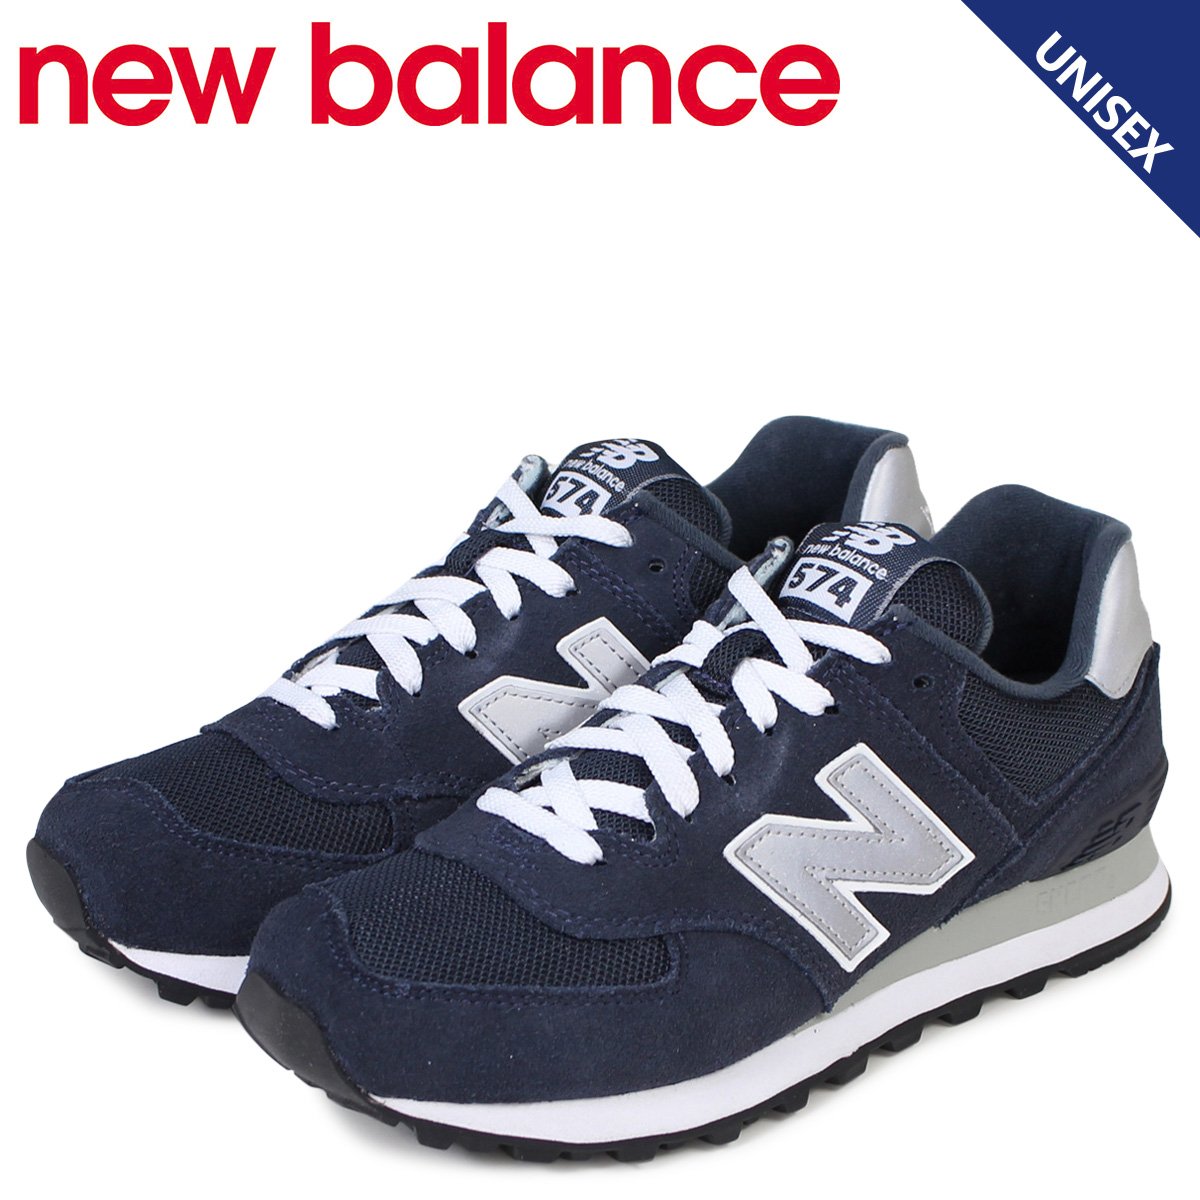 new balance m574nn navy